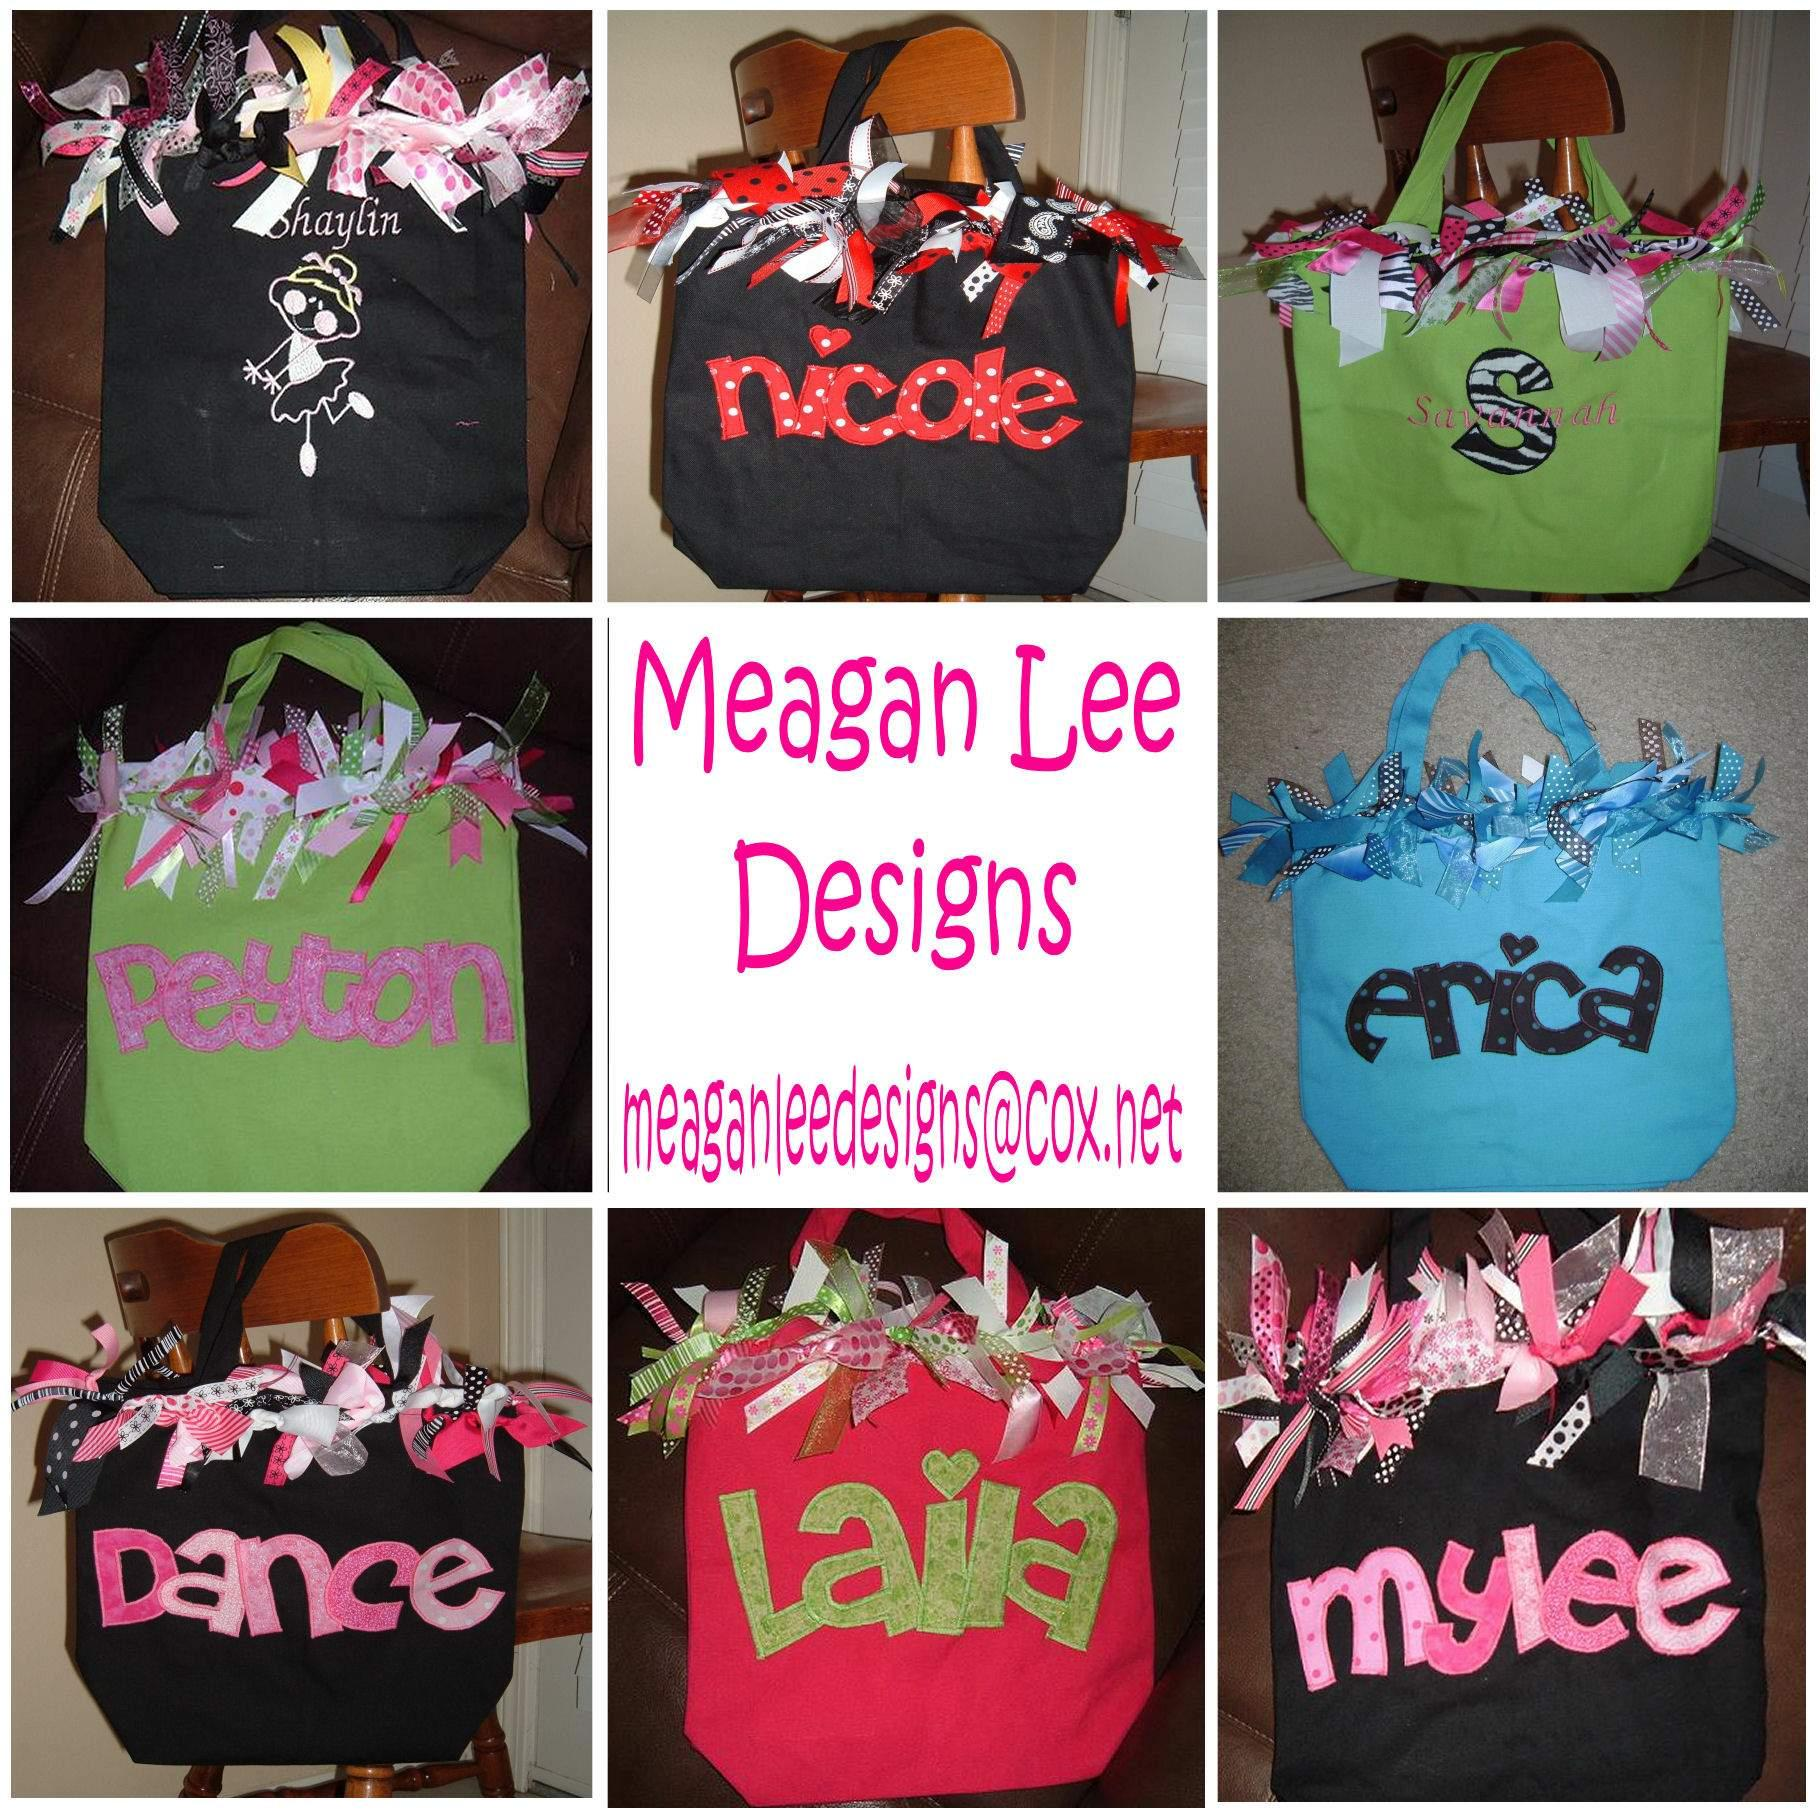 meagan-lee-designs-tote-bag2.jpg